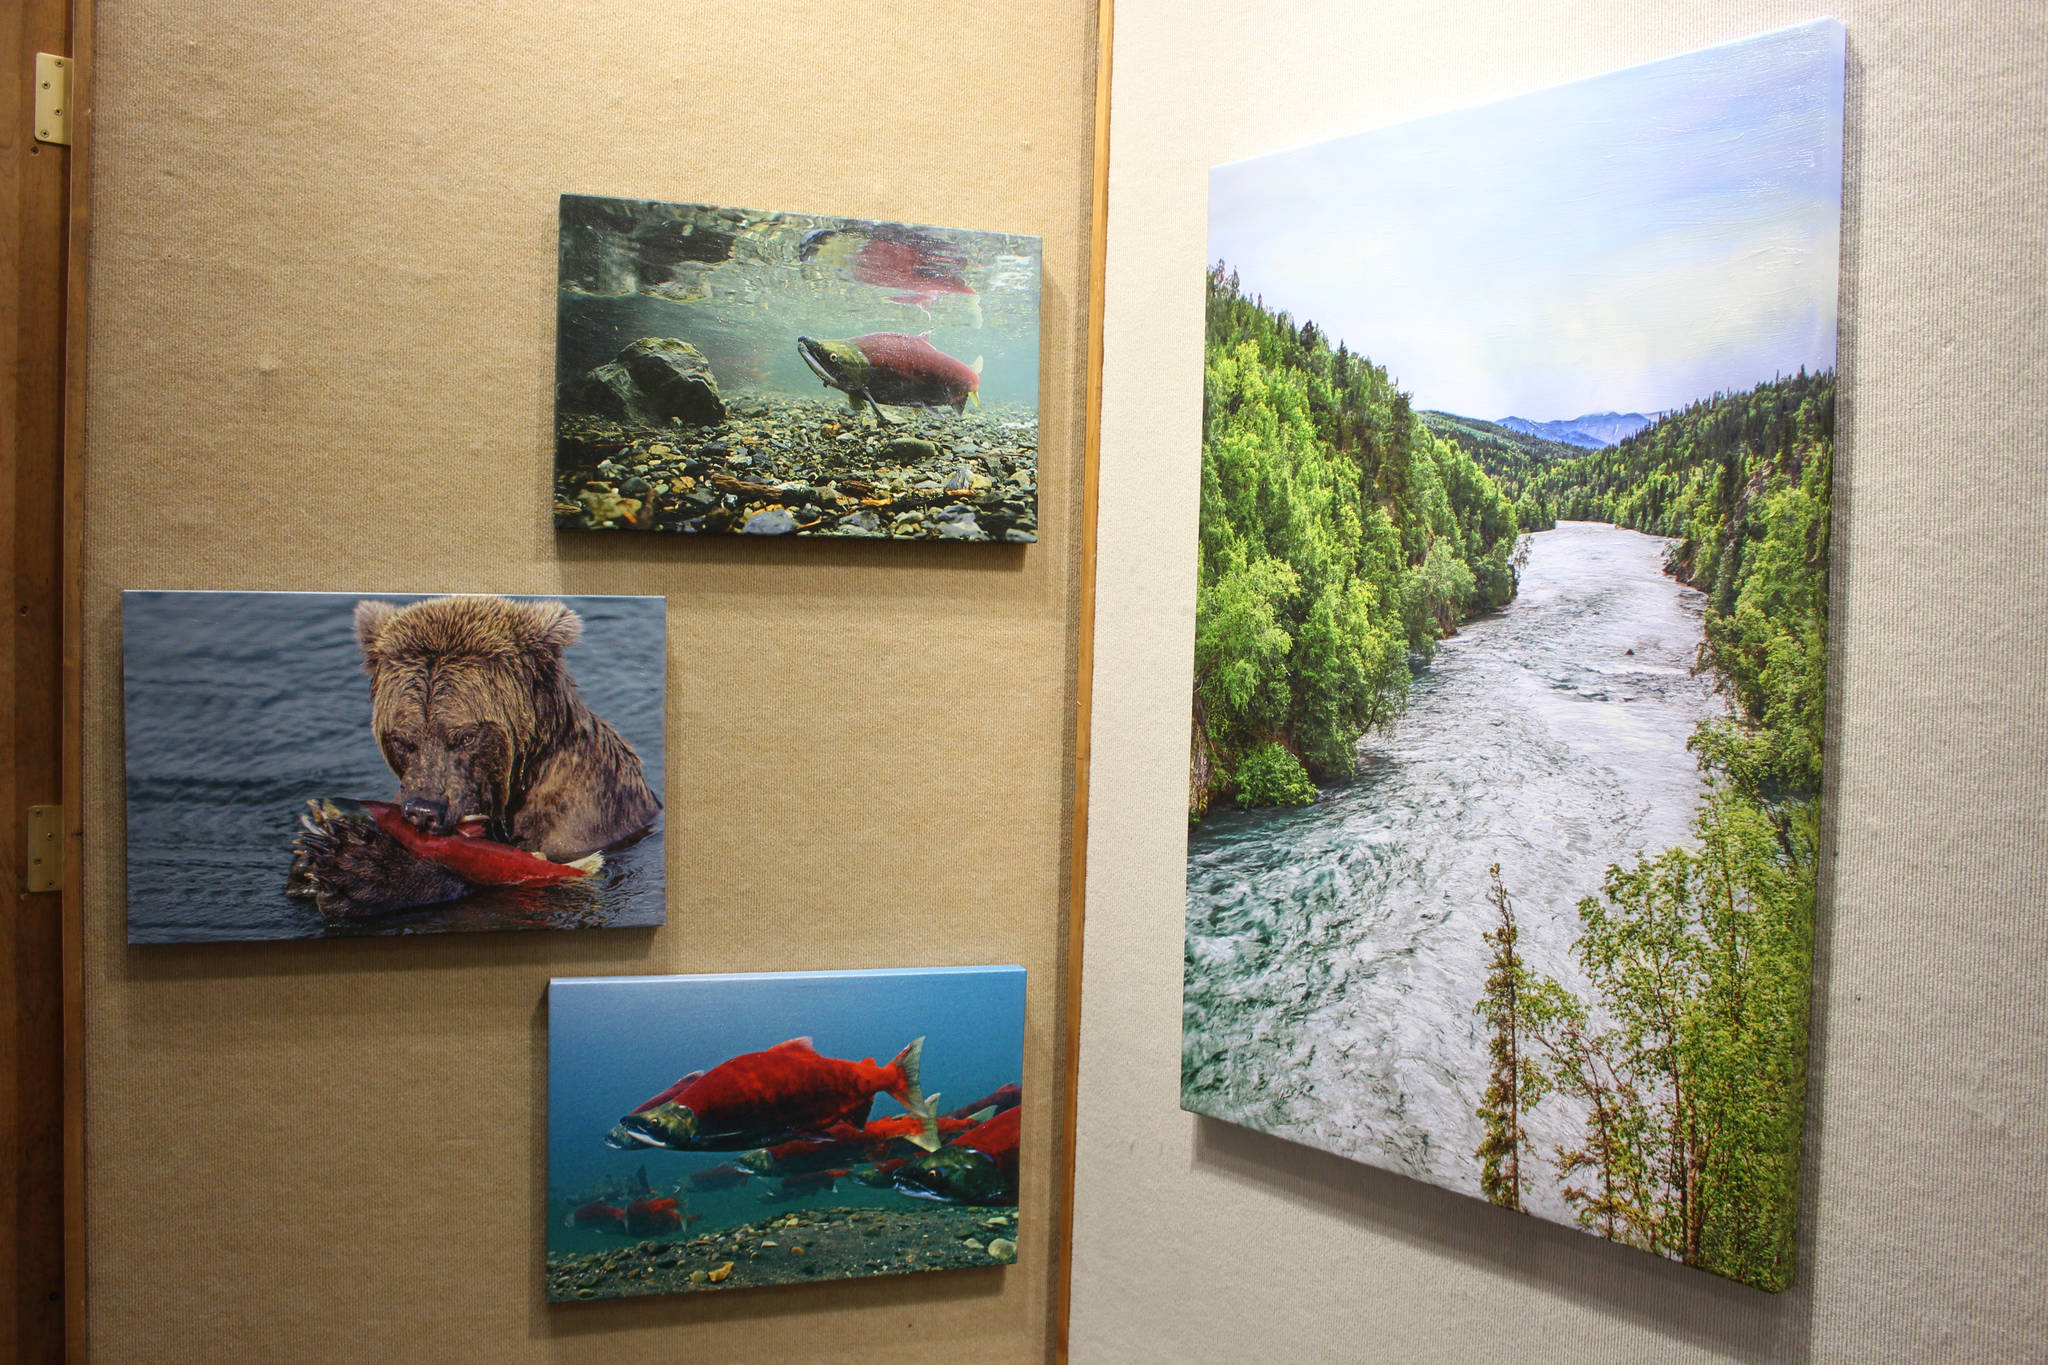 Photographs on canvas by Mary Frische and Tom Collopy are on display at the Kenai Visitor and Cultural Center on Jan. 12, 2021. (Photo by Brian Mazurek/Peninsula Clarion)